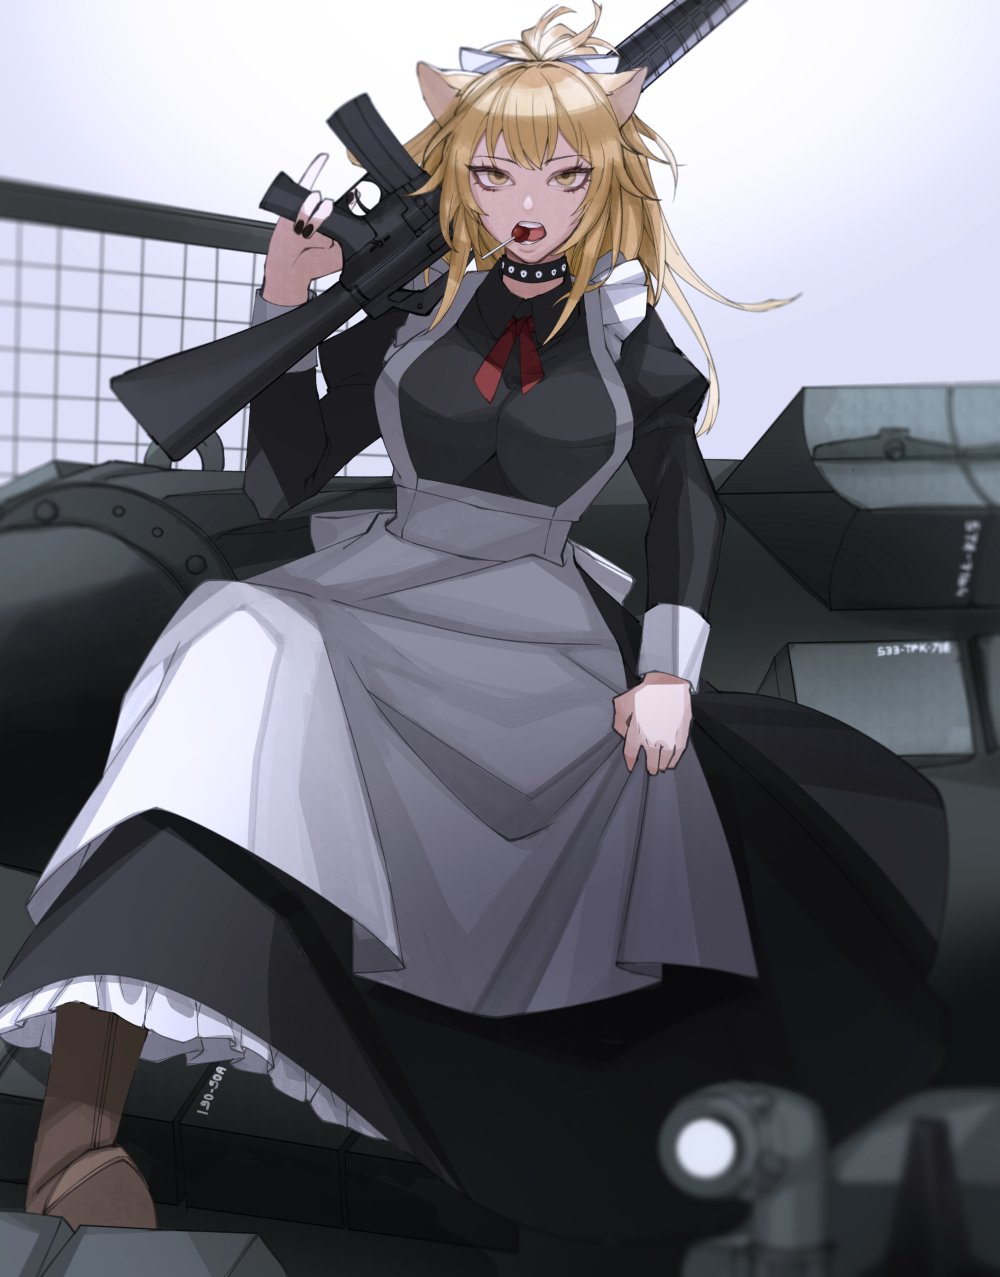 1girl alternate_costume animal_ears apron ar-15 arknights assault_rifle black_choker black_nails blonde_hair blush boots breasts brown_footwear candy choker commentary dress eyelashes food food_in_mouth frills gun hair_between_eyes hairband highres iuciferic large_breasts lion_ears lollipop long_dress long_hair long_sleeves maid maid_apron maid_headdress nail_polish open_mouth red_neckwear rifle siege_(arknights) solo studded_choker tank_top twitter_username victorian_maid weapon yellow_eyes